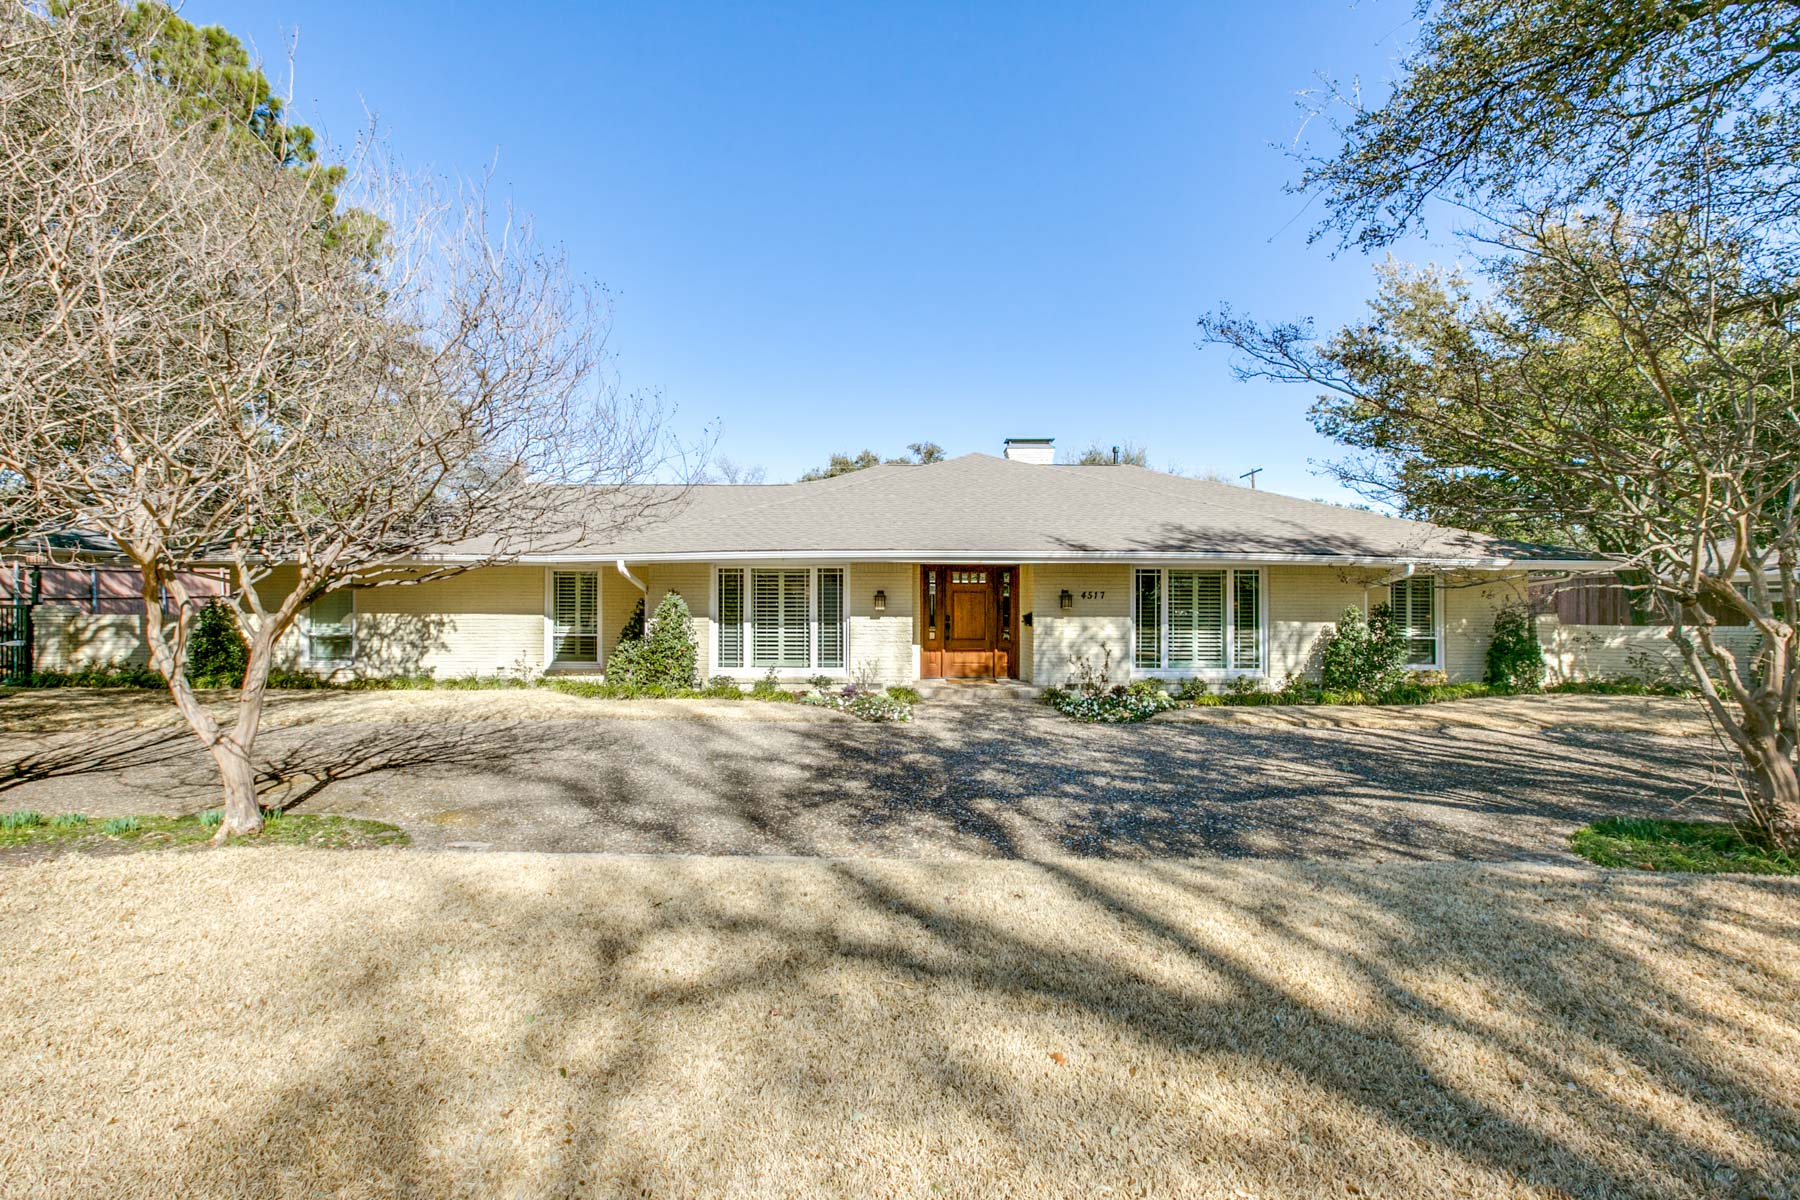 Single Family Home for Sale at Hockaday Transitional 4517 Shady Hill Drive, Dallas, Texas, 75229 United States